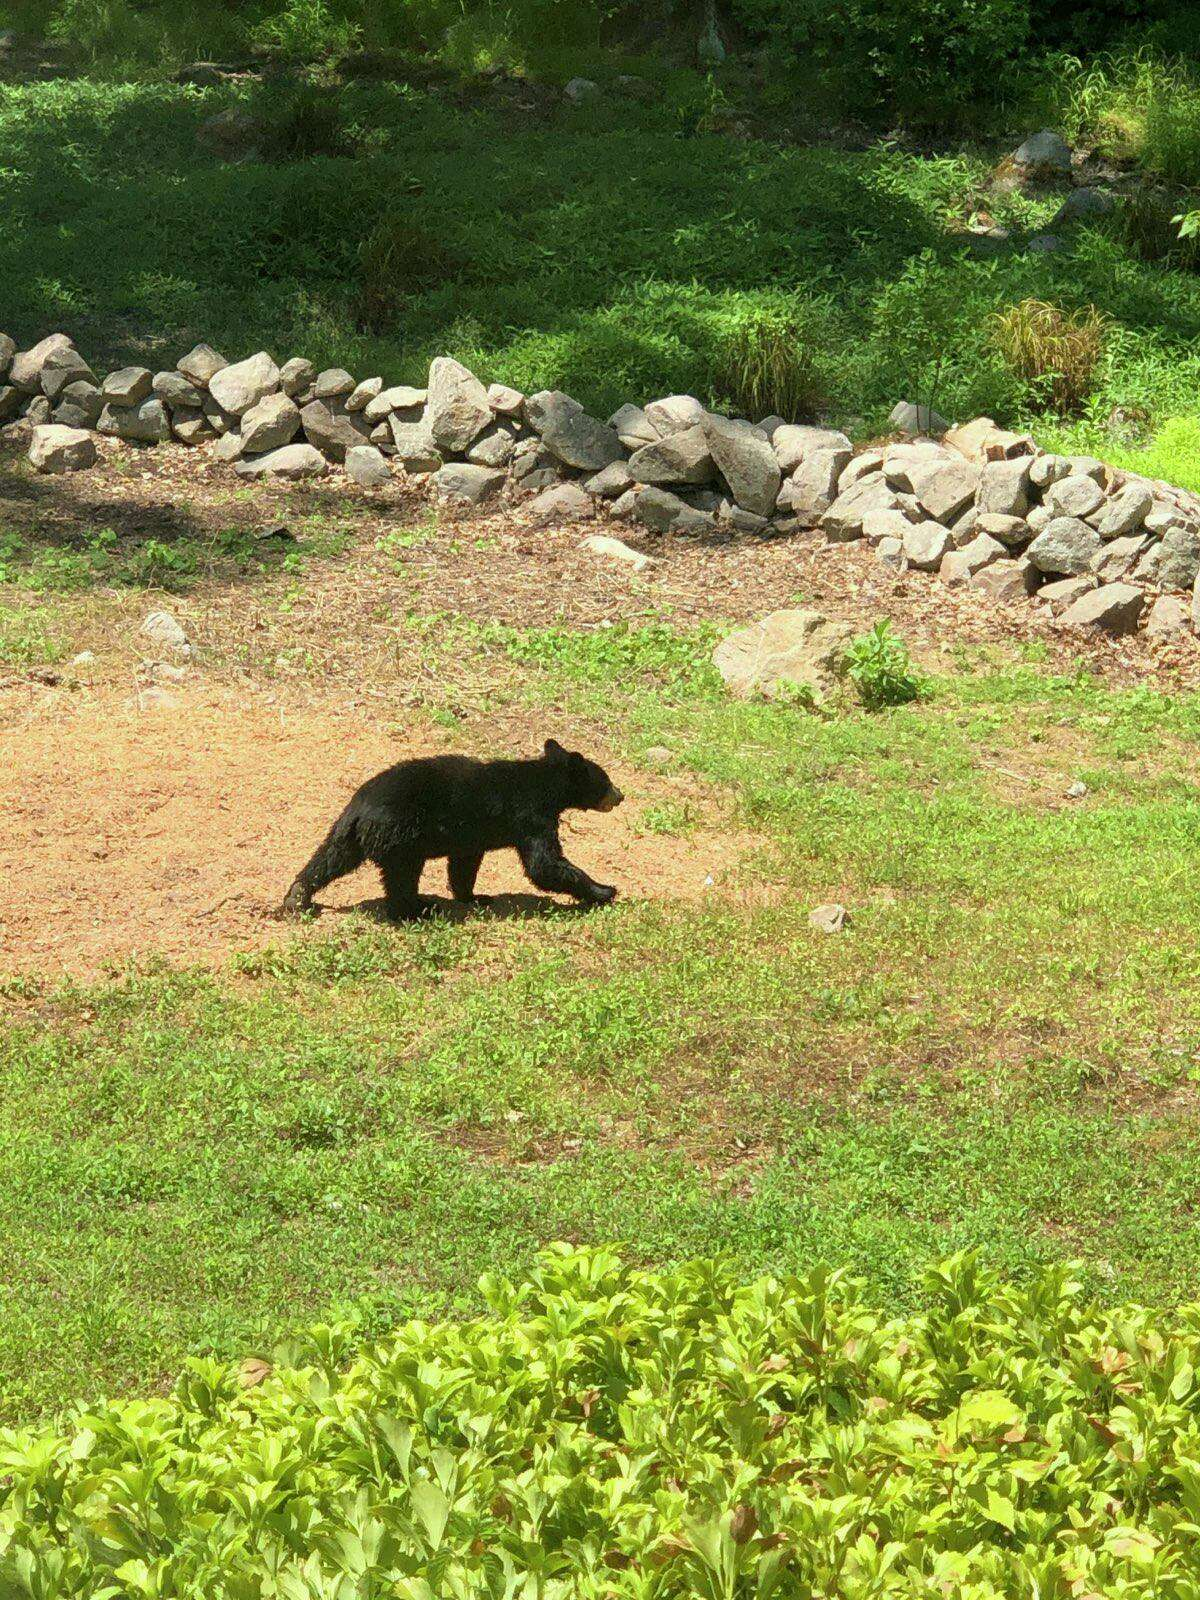 A baby bear is in the backyard of New Canaan resident Susan Serven's nextdoor neighbor's backyard at 174 Mariomi Road in New Canaan Friday, afternoon, June 26, 2020. Serven's nextdoor neighbors who live at the mentioned address are: John, and Jennifer Ruth, and their son Adam Ruth. Adam took the photo. Jennifer then asked Serven to send the photo to the New Canaan Advertiser. Serven then e-mailed it to the Advertiser.